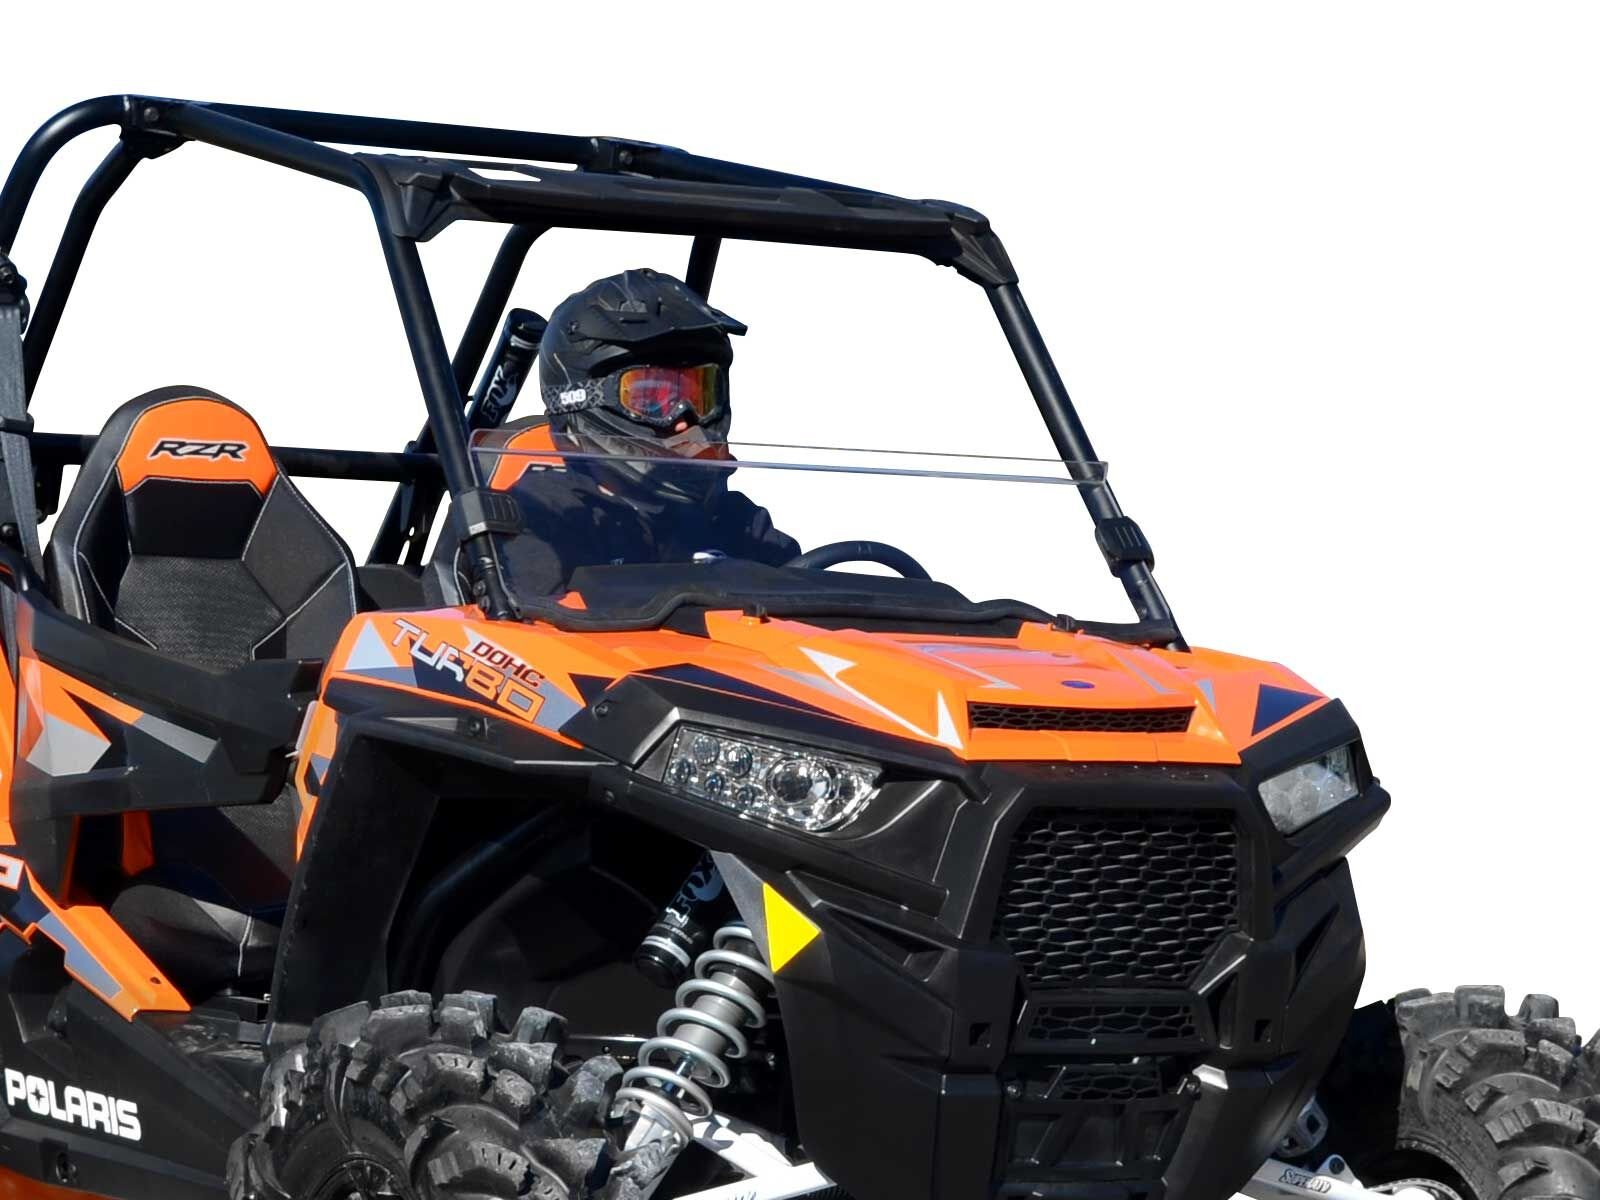 SuperATV Heavy Duty Clear Standard Half Windshield for Polaris RZR 900/900 S/1000/1000 S/Turbo XP/4 1000 - Installs in 5 Minutes!